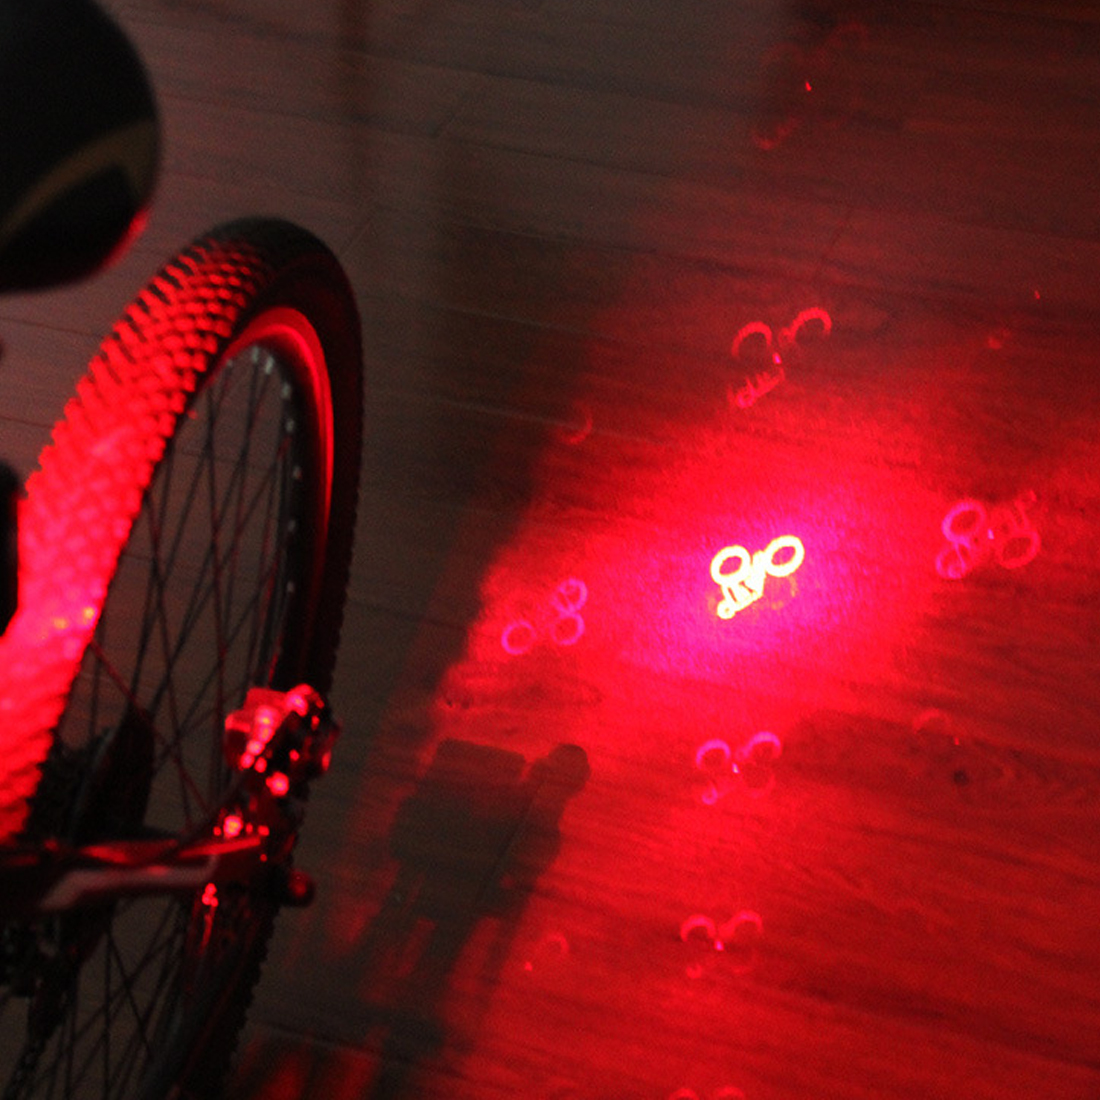 Bicycle Intelligent Turn Tail Light Signal Light Brake Light Projection fahrradlicht LED Infrared Warning Light Accessories